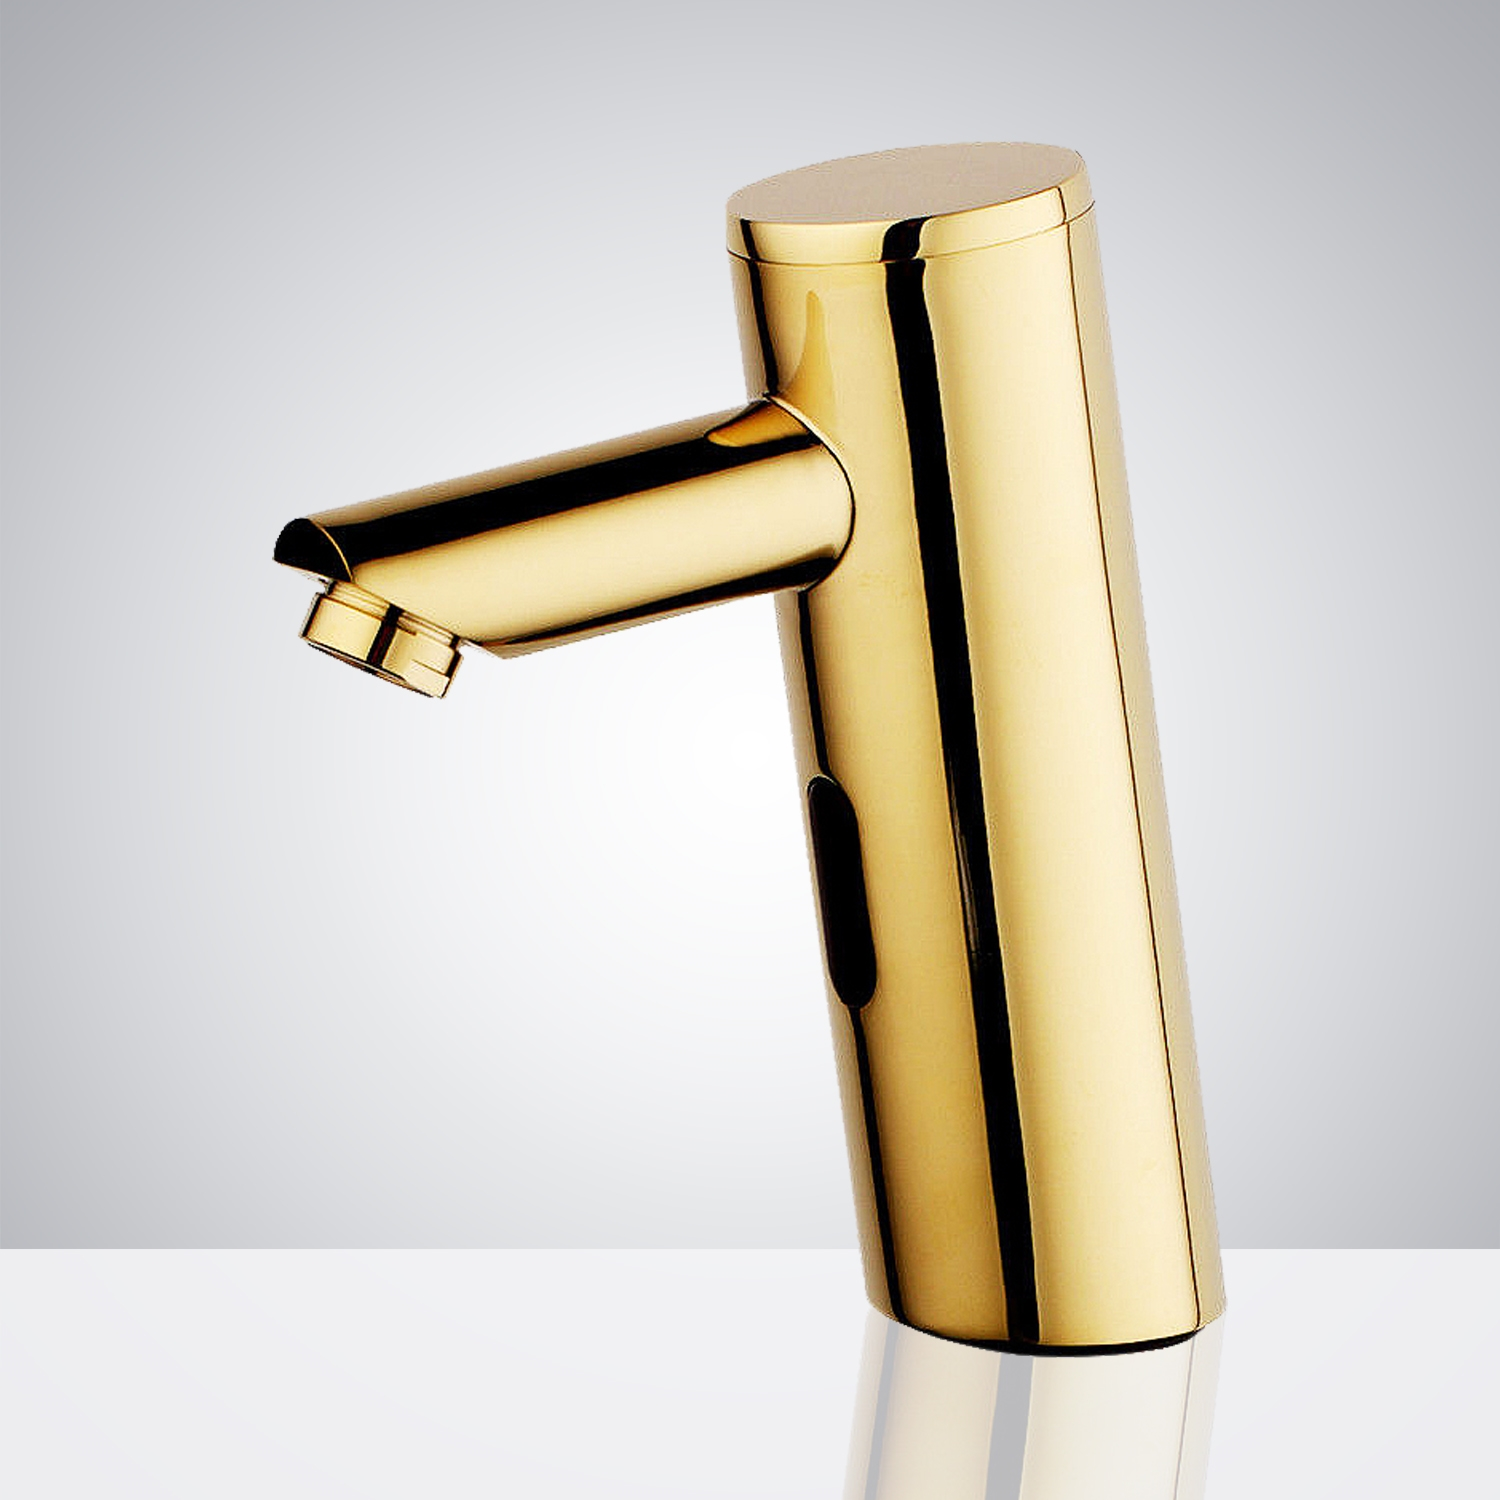 Fontana Rio Commercial Shiny Gold Finish Infrared Automatic Motion Sensor Faucet